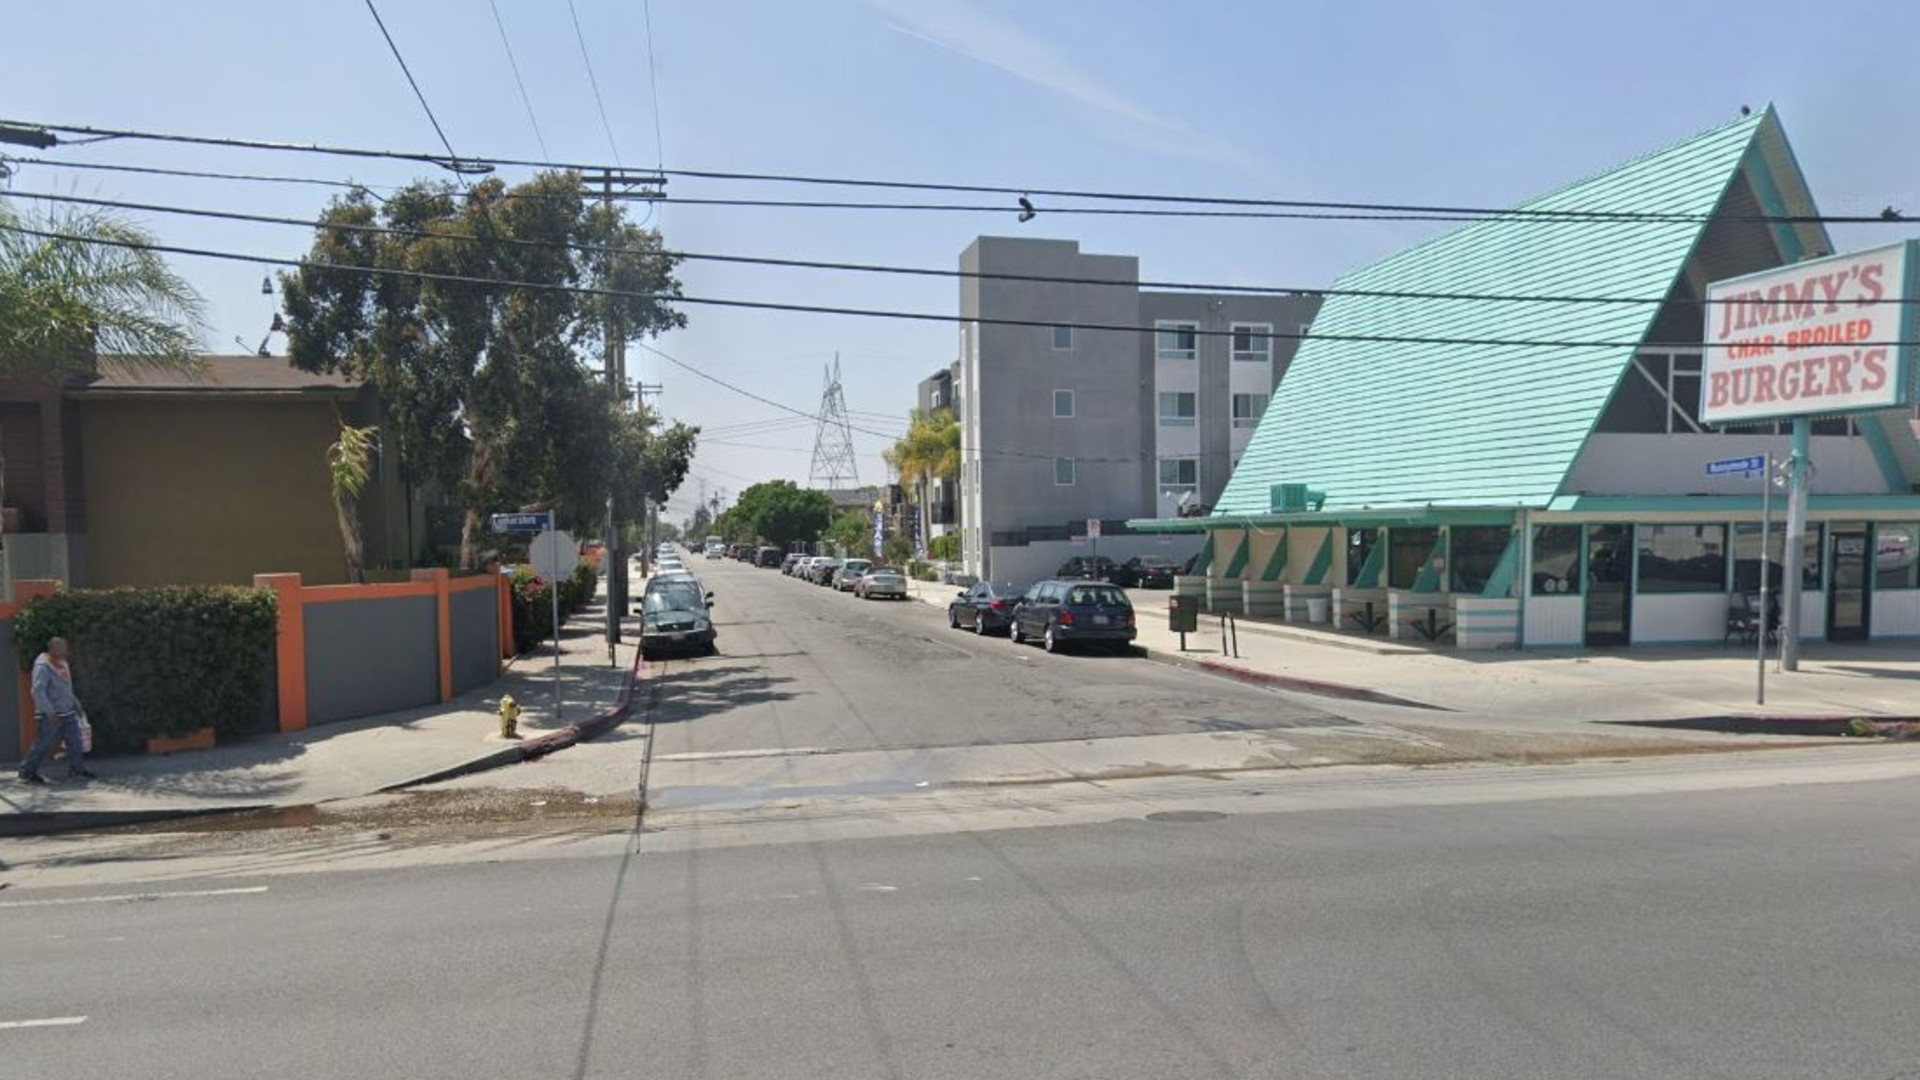 The 11700 block of Runnymede Street in North Hollywood, as pictured in a Google Street View image.